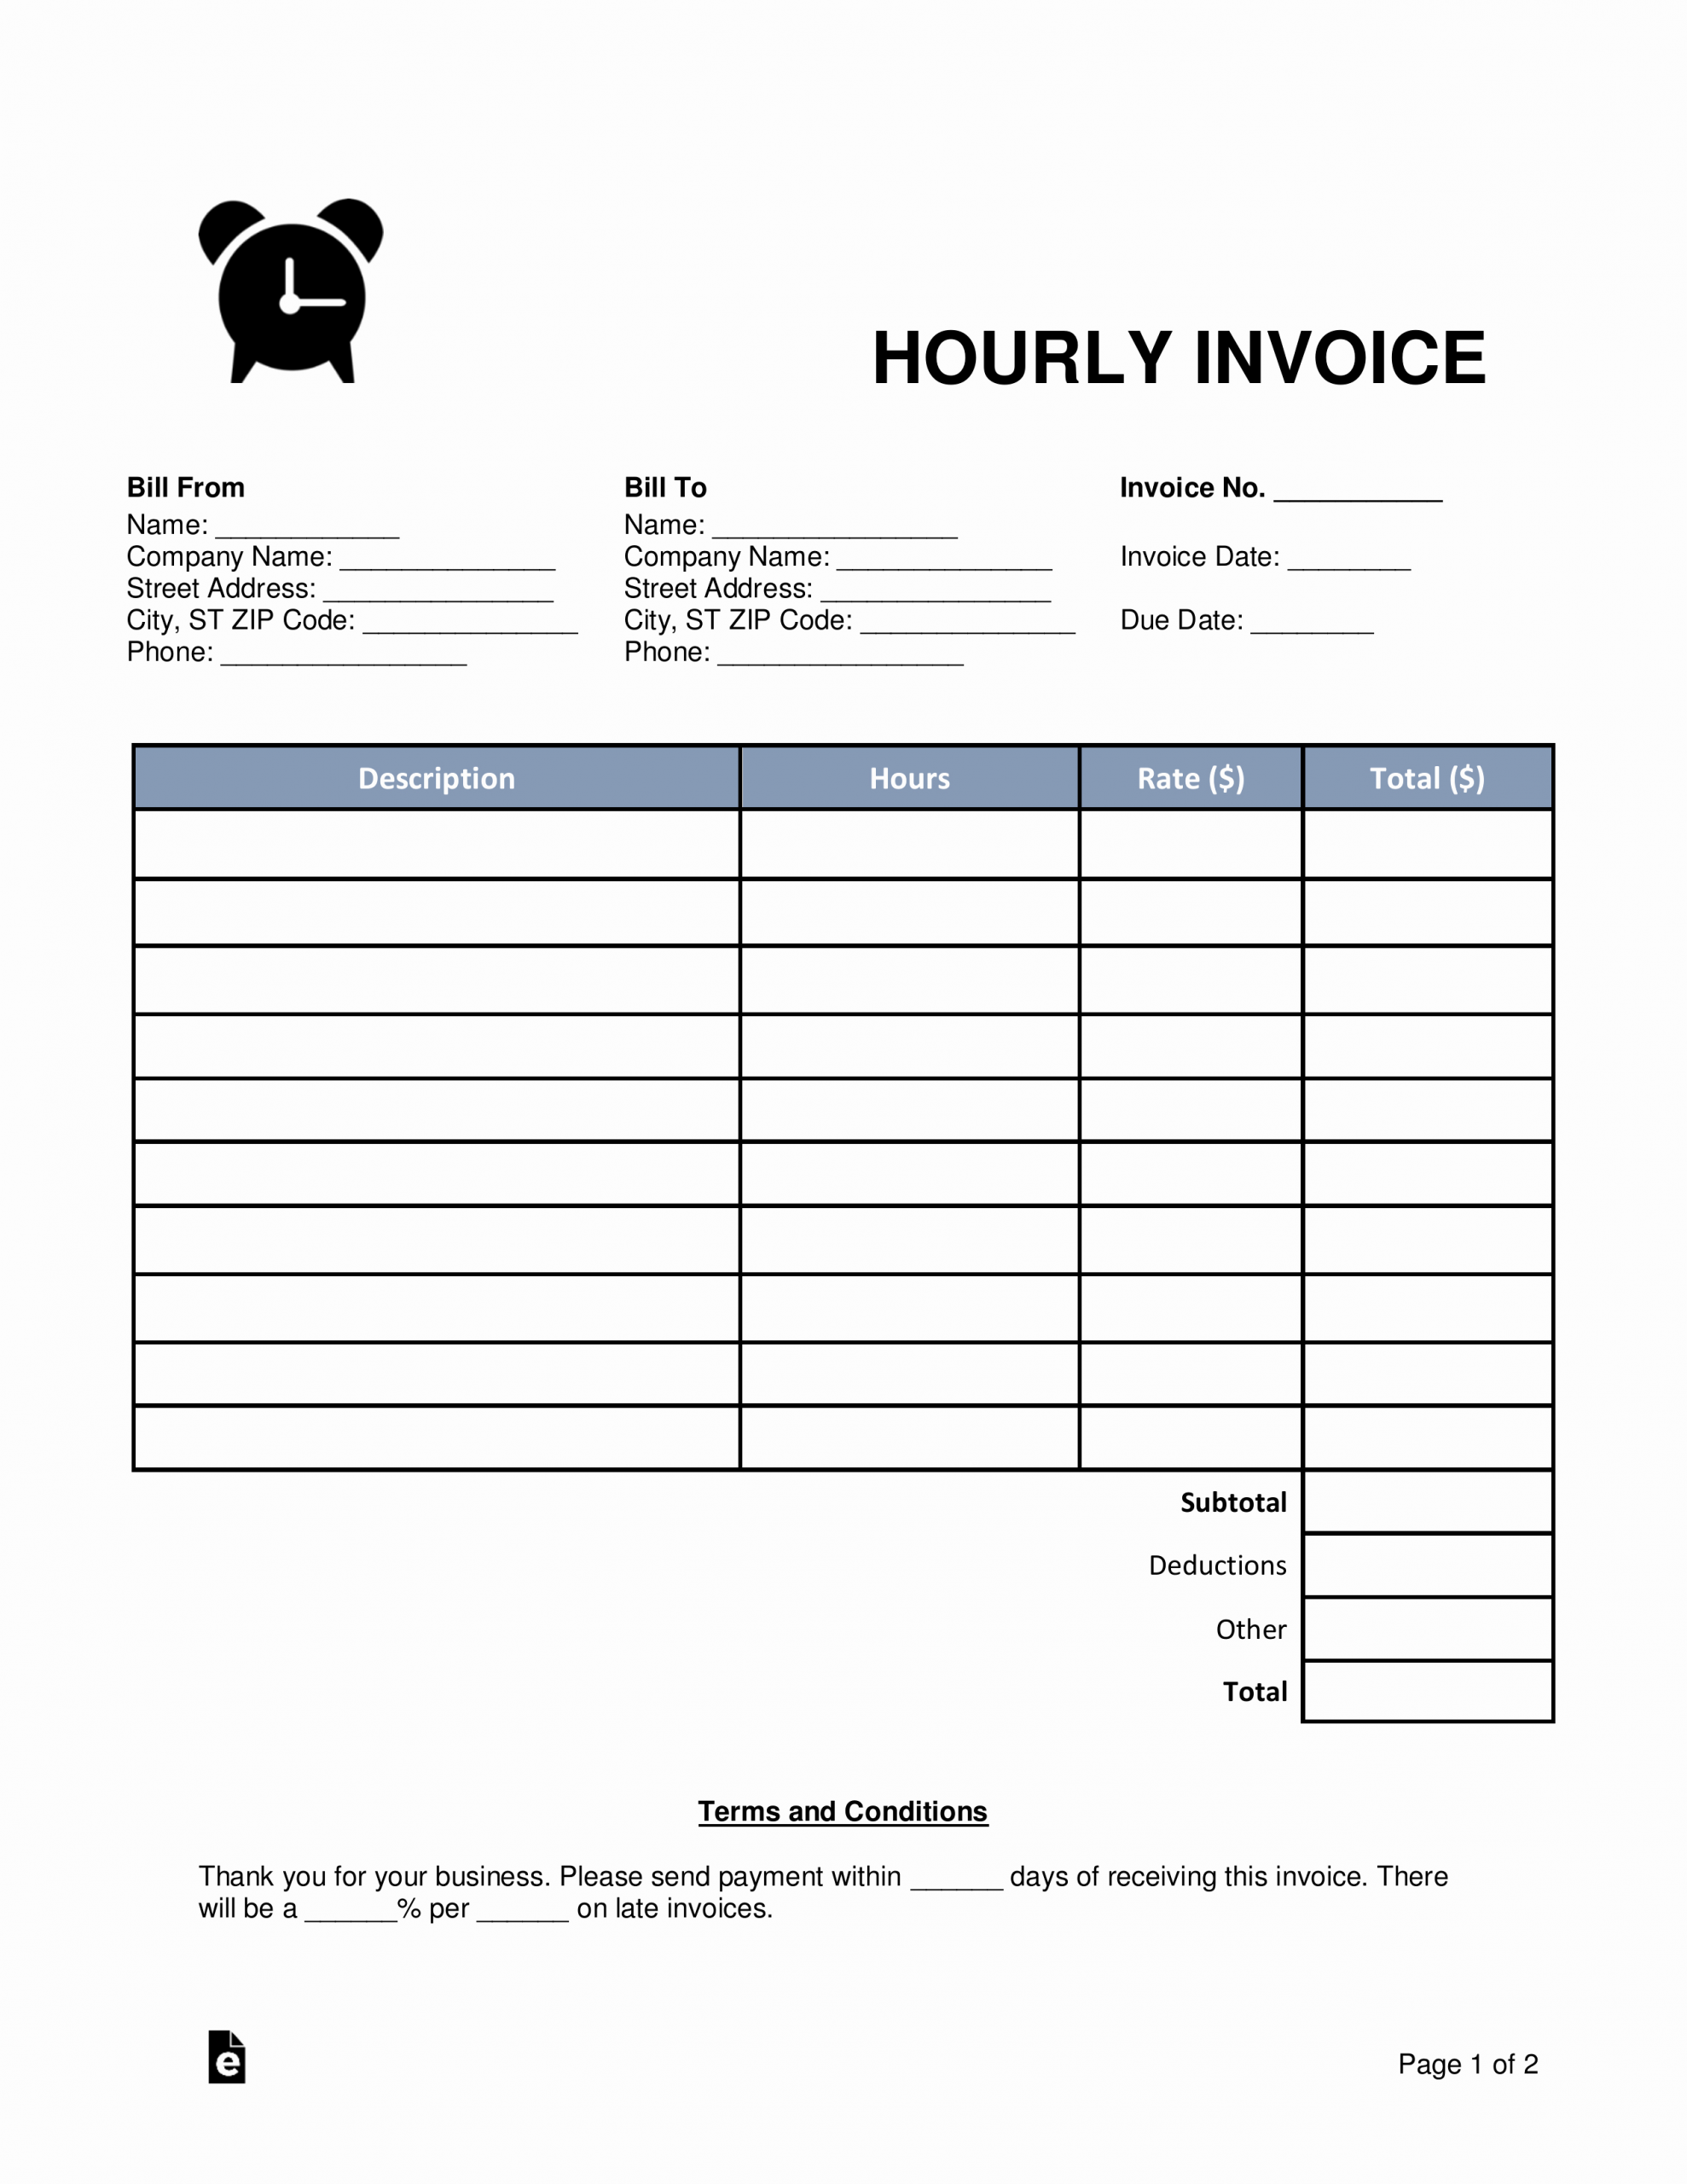 Labor Invoice Template Word Lovely Free Hourly Invoice Template Word Pdf